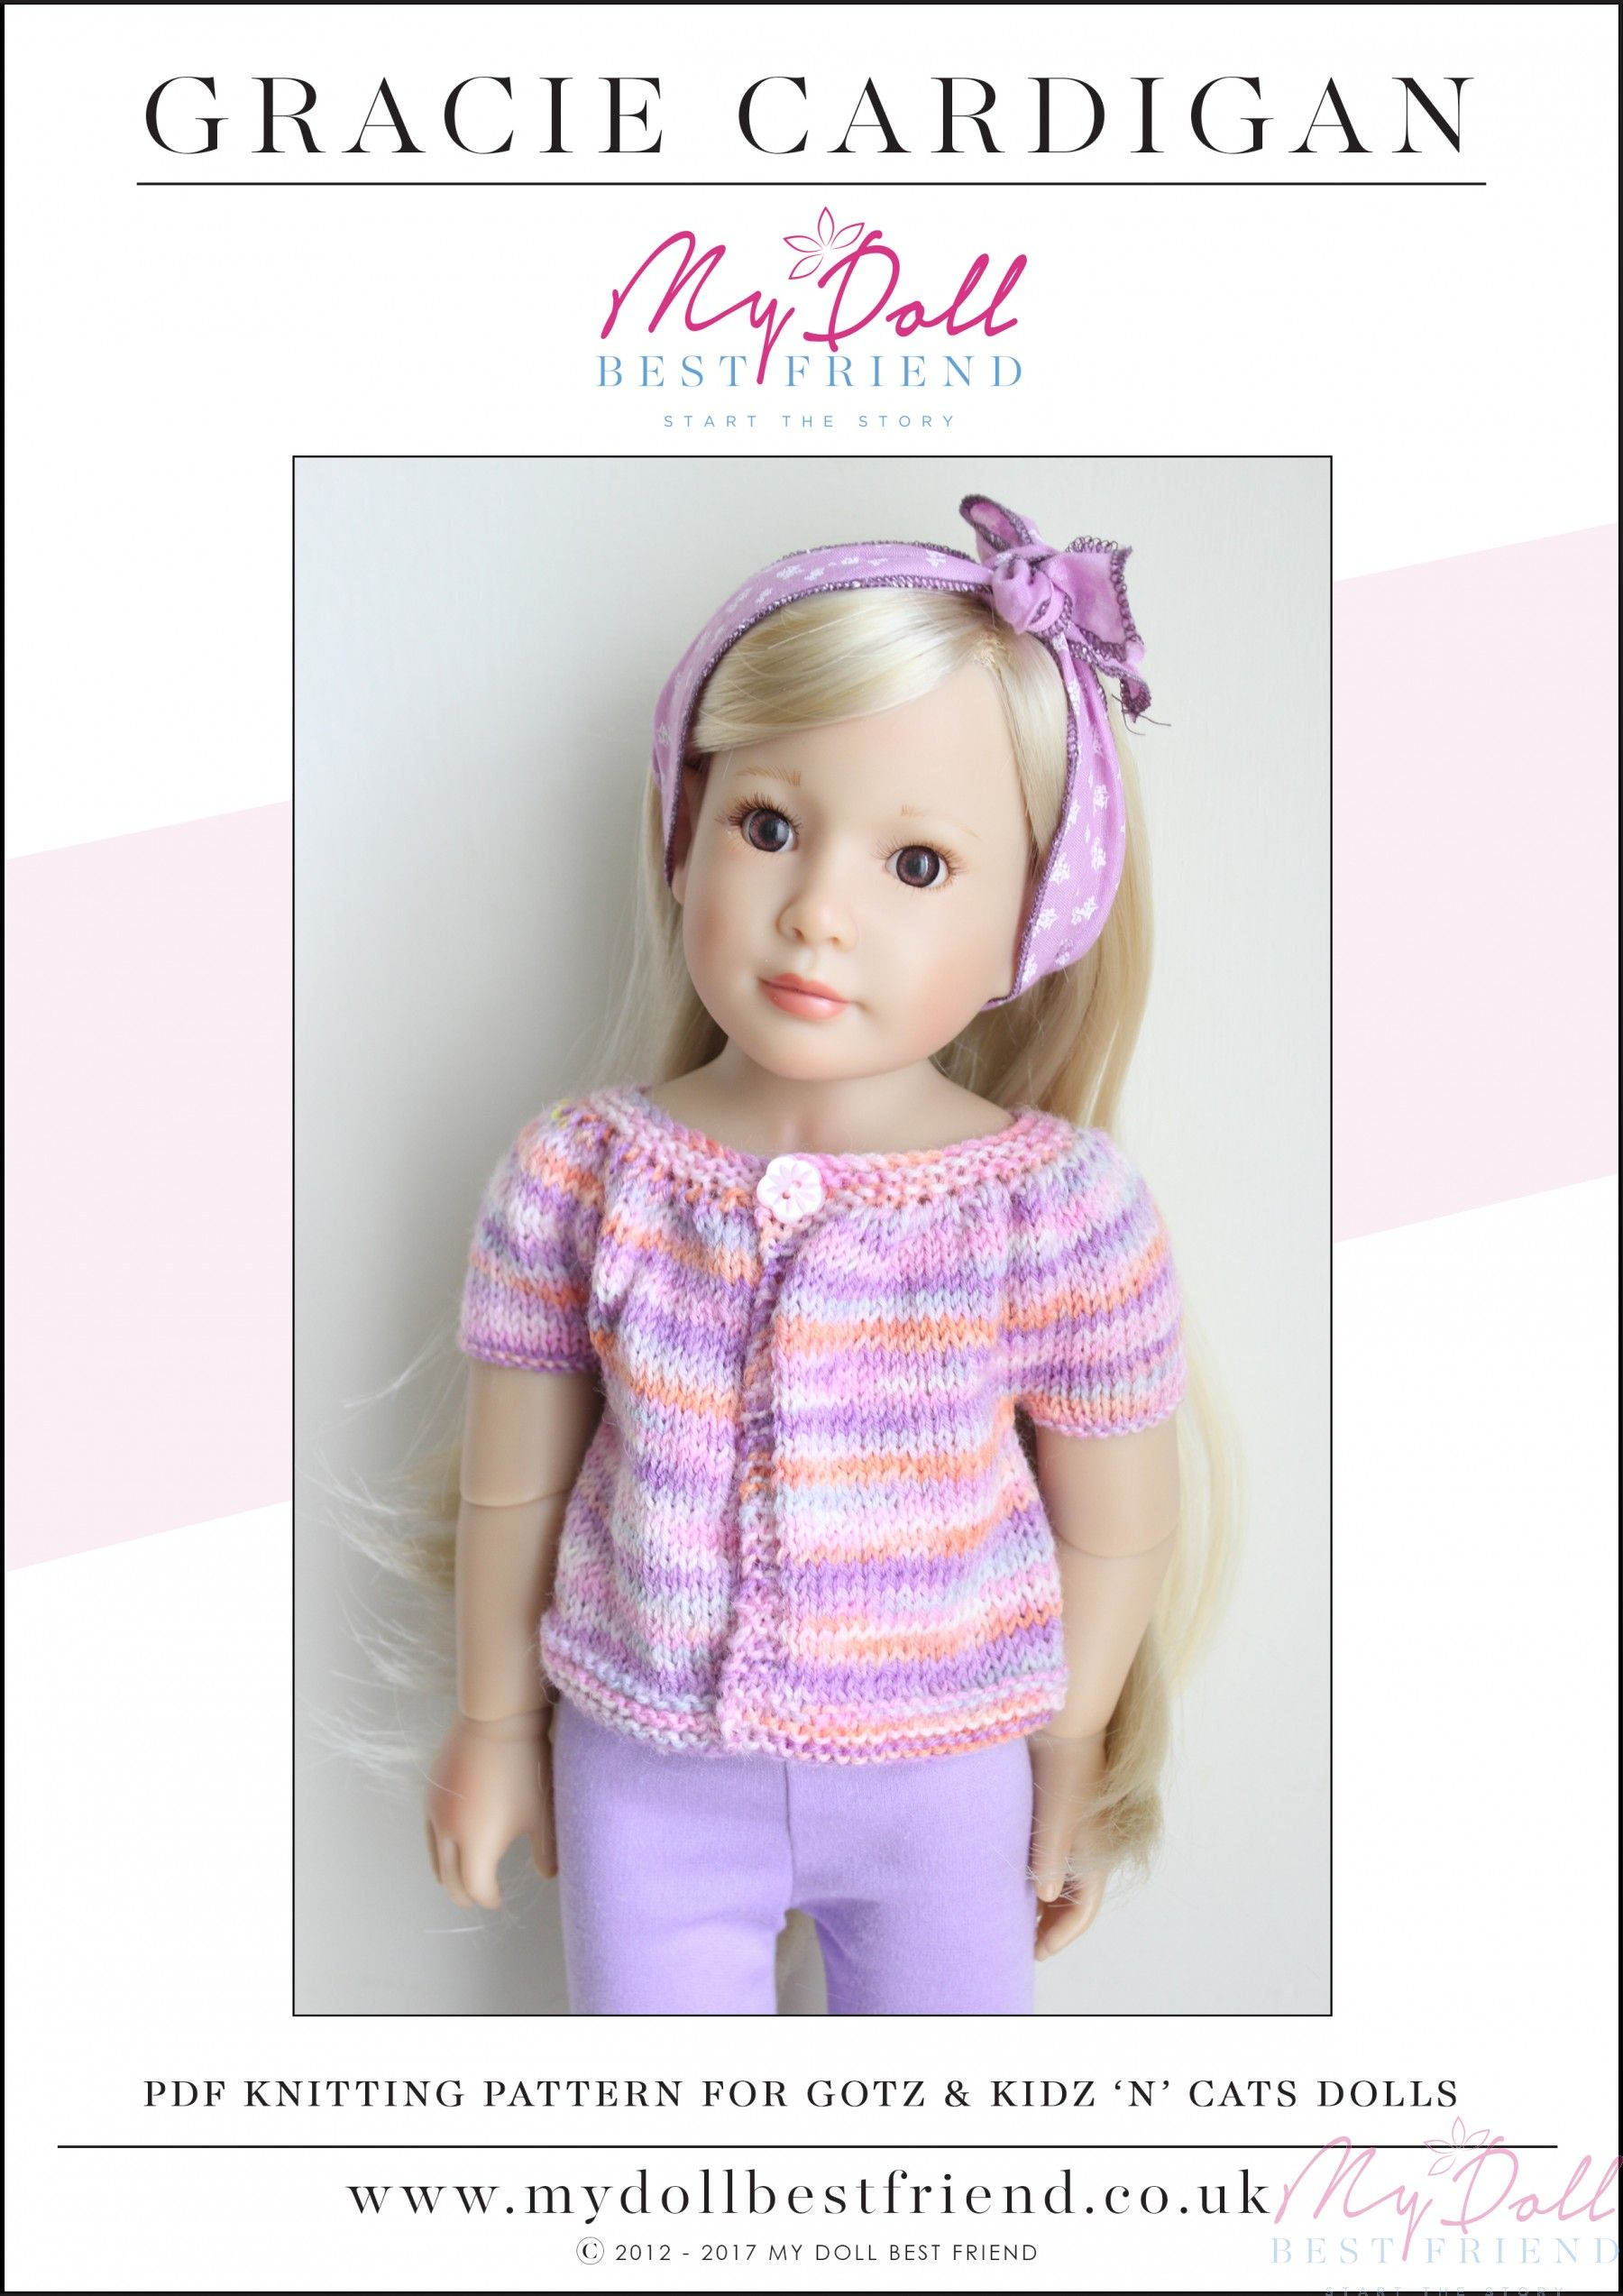 8f4d3a5d3 Doll Cardigan Knitting Pattern 45-50cm  Gracie Cardigan